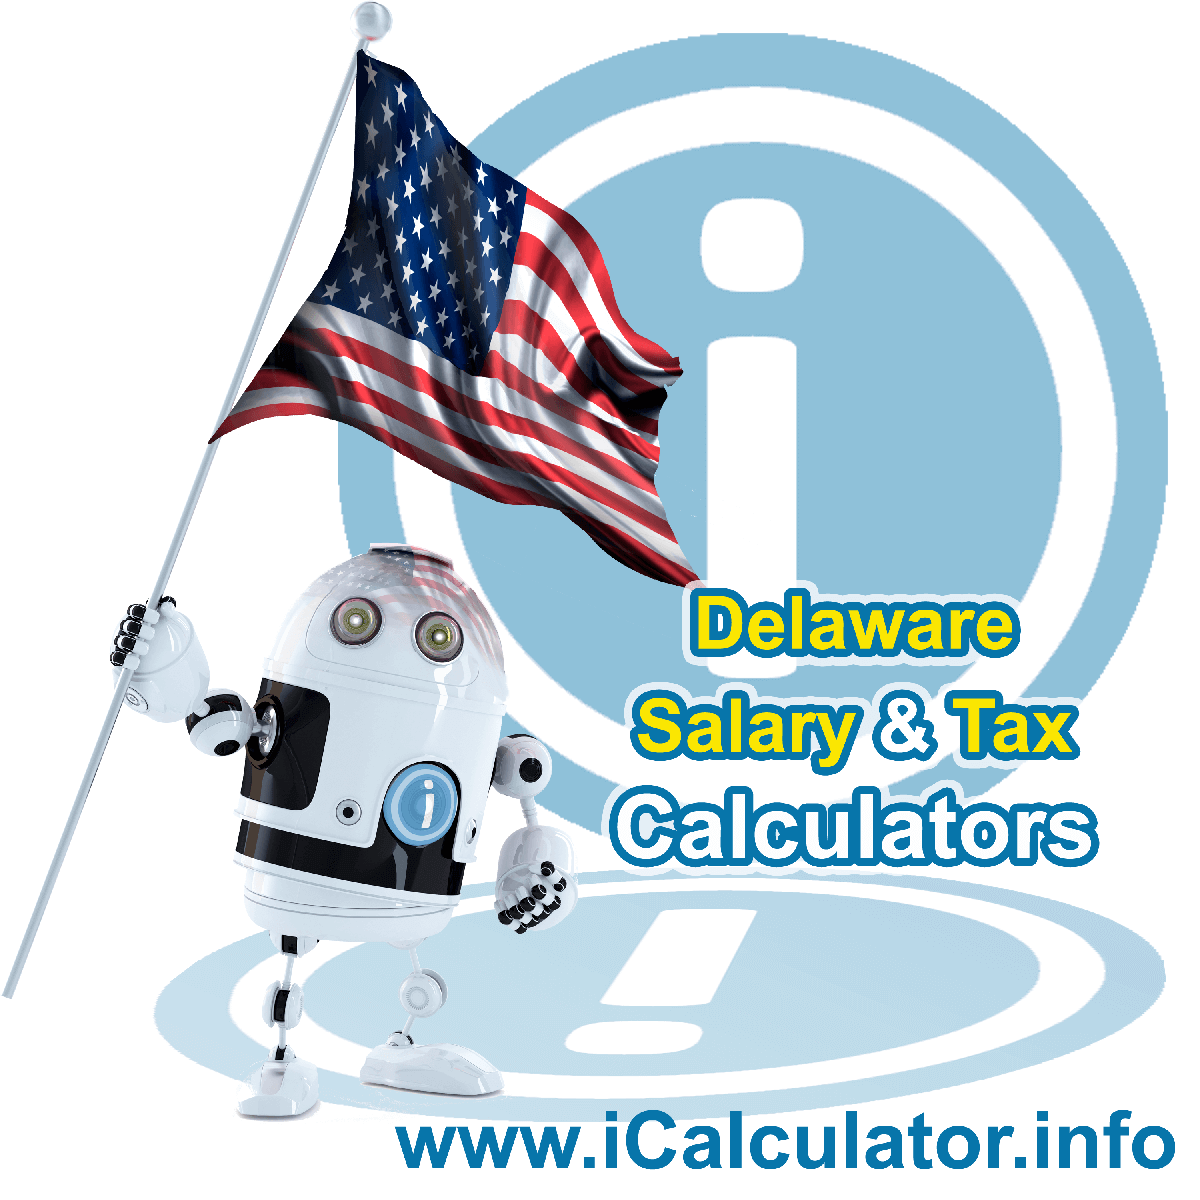 Delaware Salary Calculator 2019 | iCalculator | The Delaware Salary Calculator allows you to quickly calculate your salary after tax including Delaware State Tax, Federal State Tax, Medicare Deductions, Social Security, Capital Gains and other income tax and salary deductions complete with supporting Delaware state tax tables